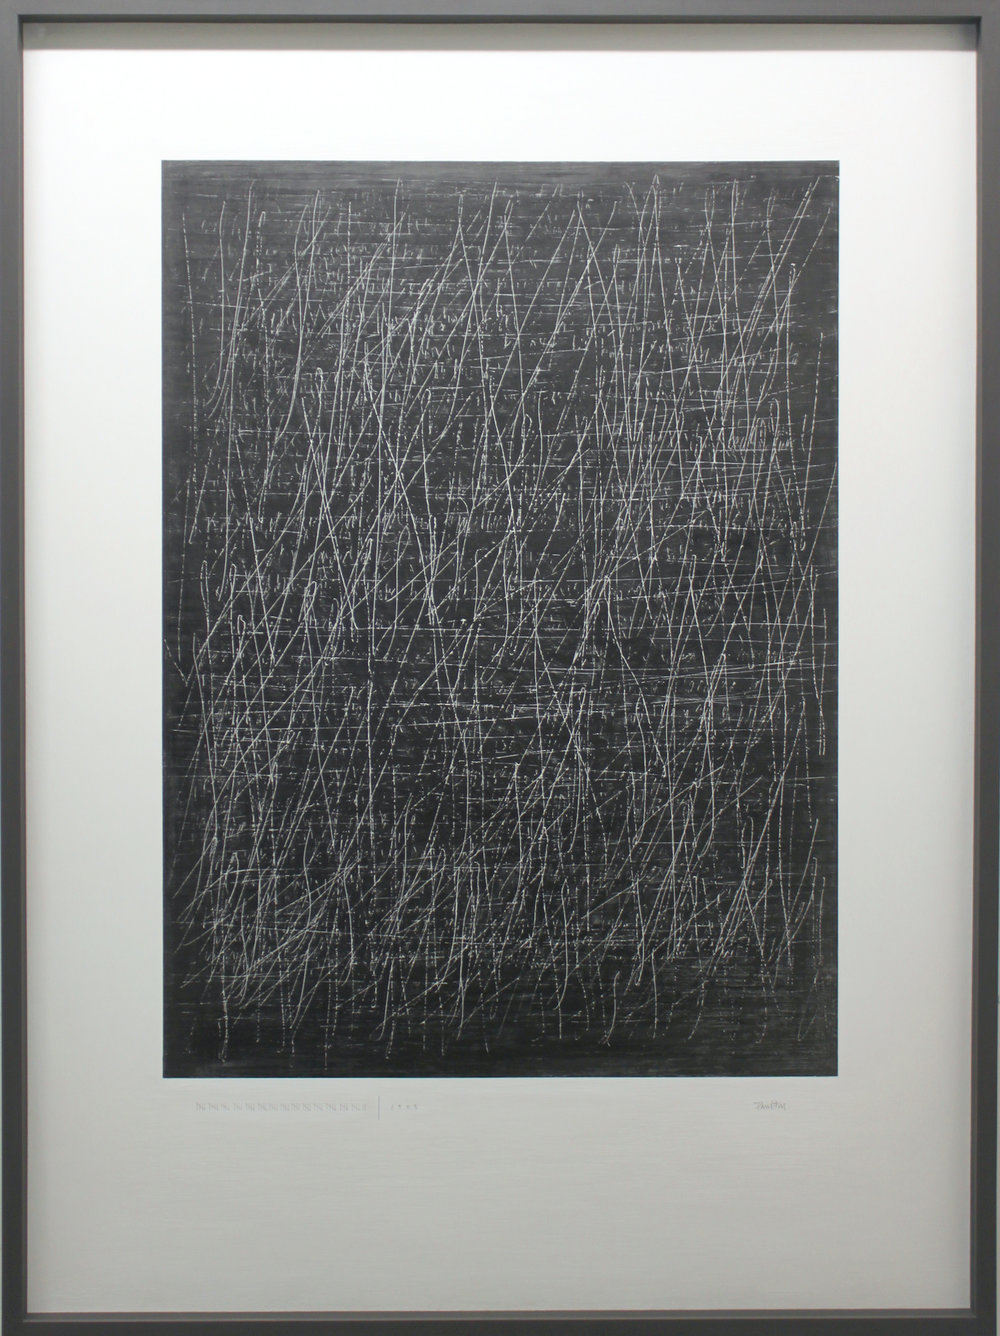 The Edge of Silence - Drawing 116x7x143cm graphite text, graphite dust and gouache on canvas framed dark grey wood with non reflective museum glass